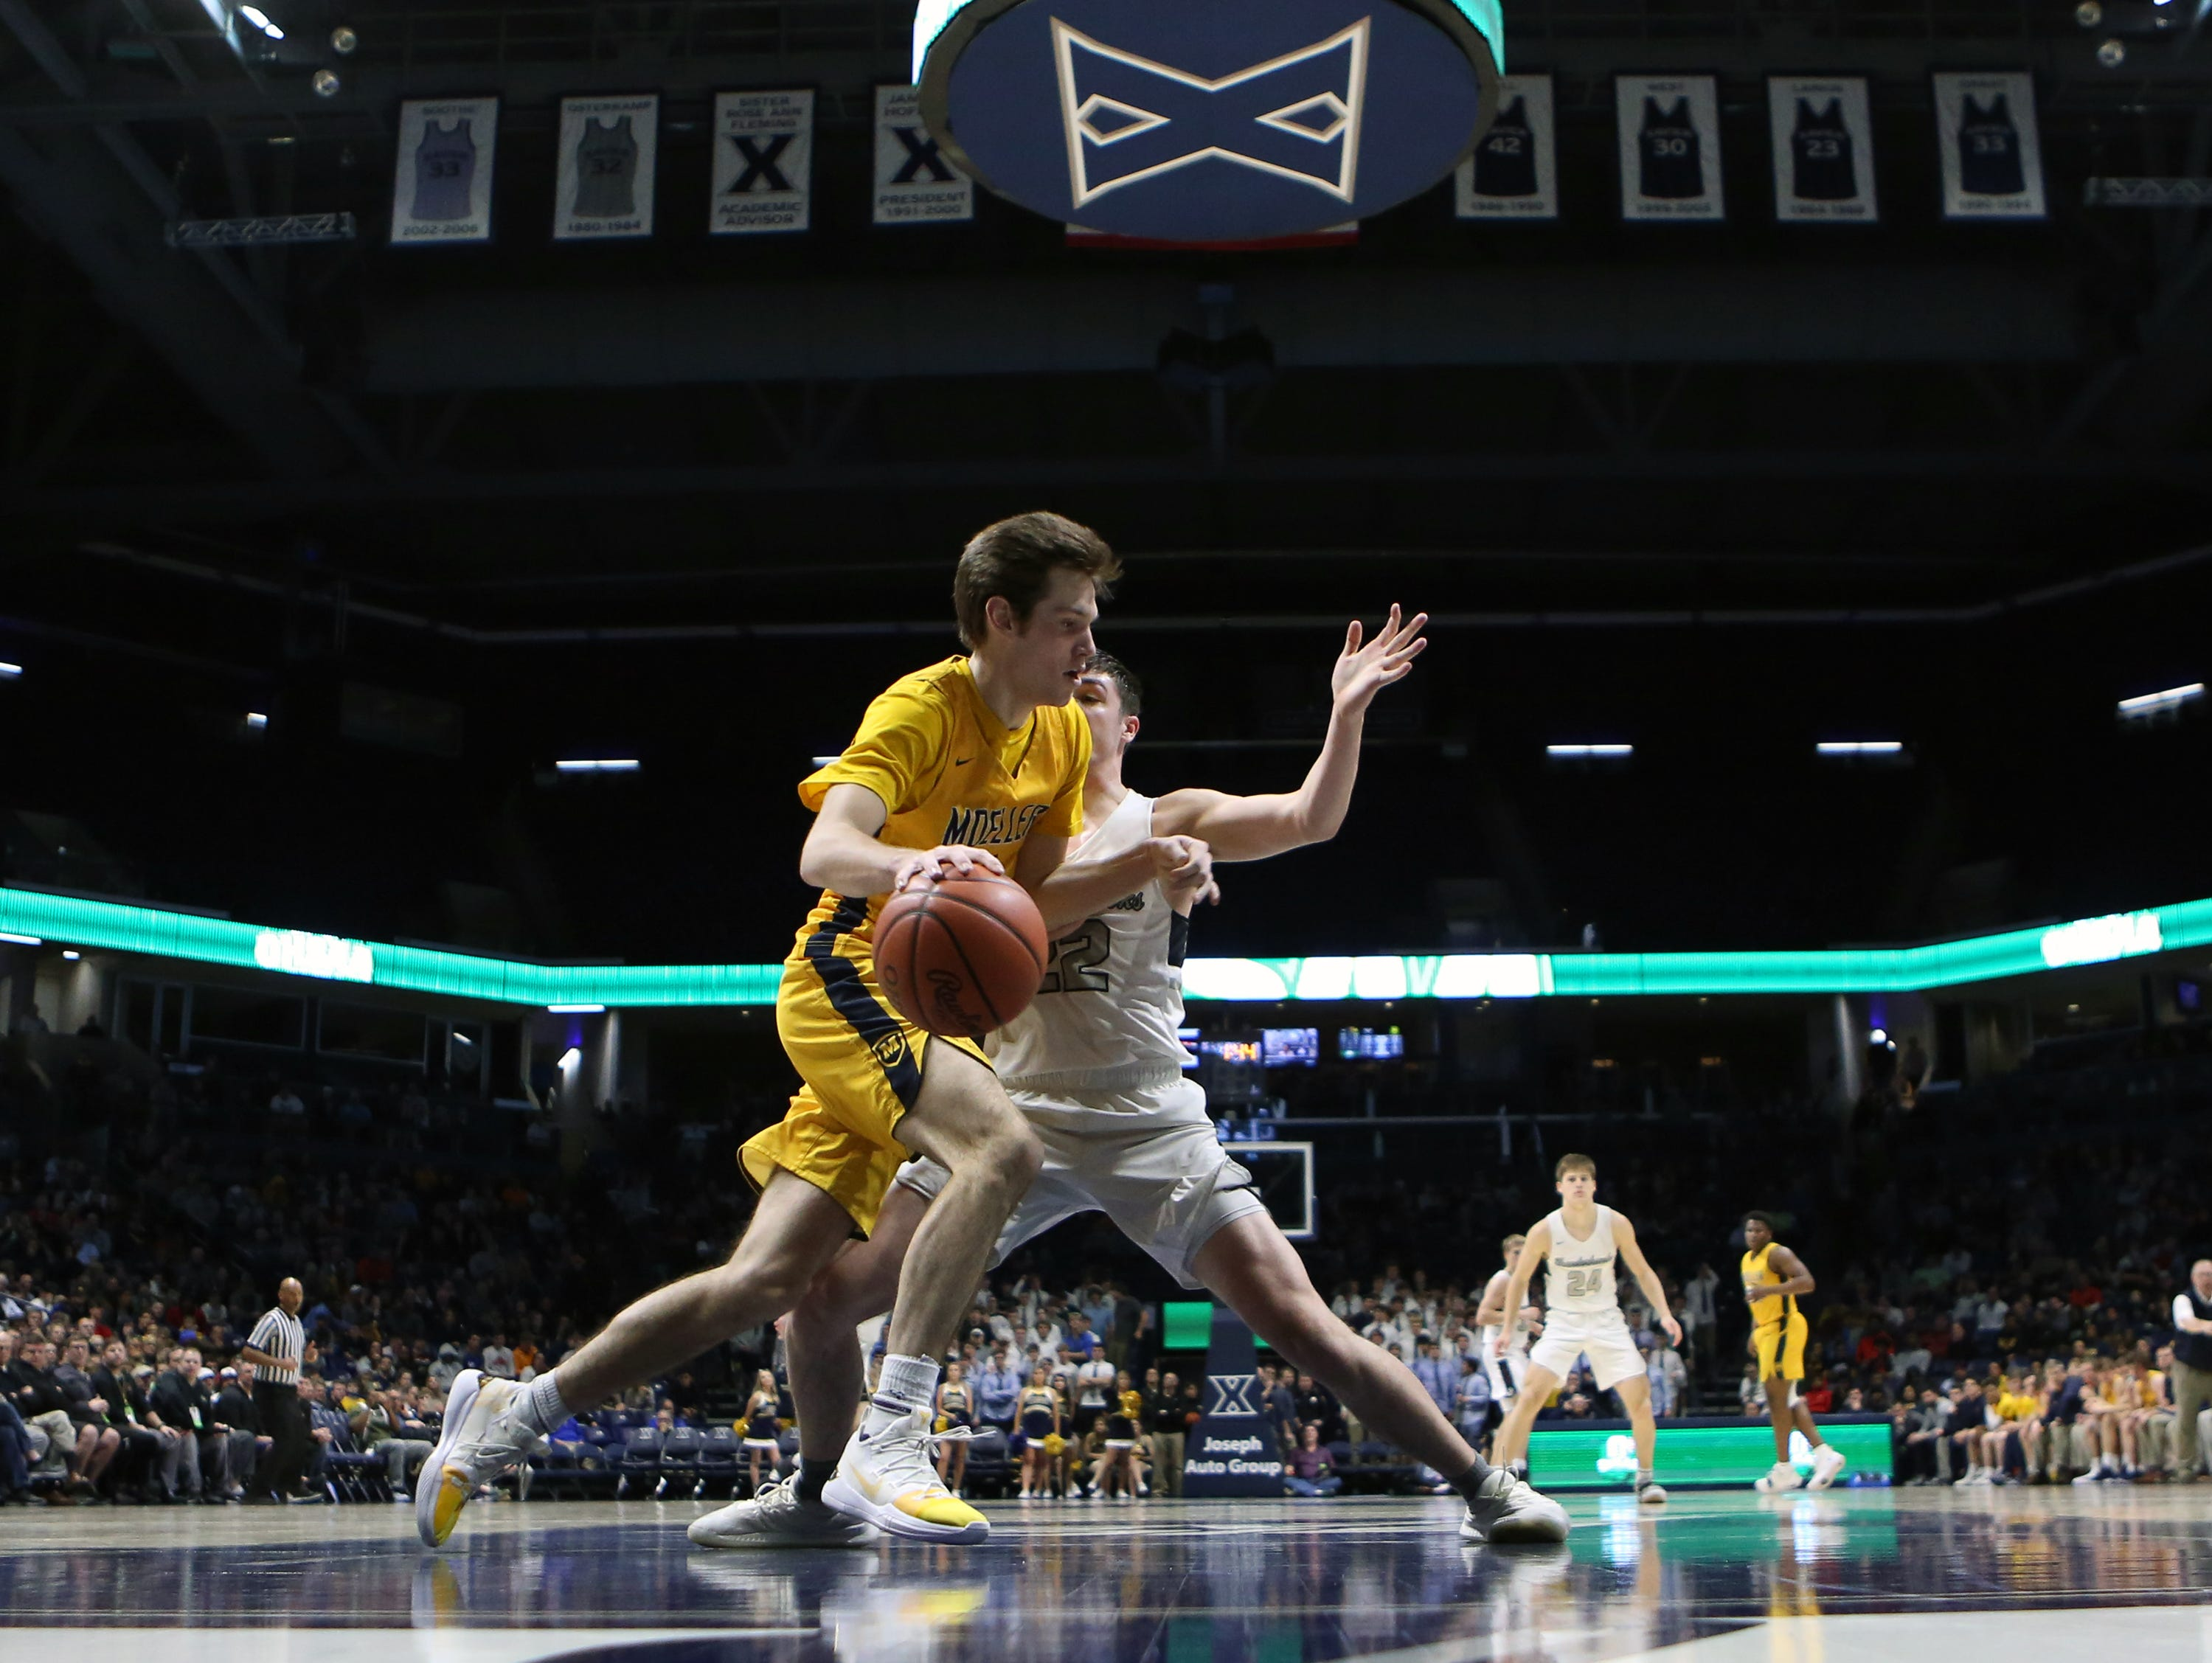 Moeller guard Michael Shipp looks to get past the Thunderhawk defense in the second half of the boys regional semifinal March 13, 2019, at Xavier University's Cintas Center. Moeller defeated Lakota East 47-33.